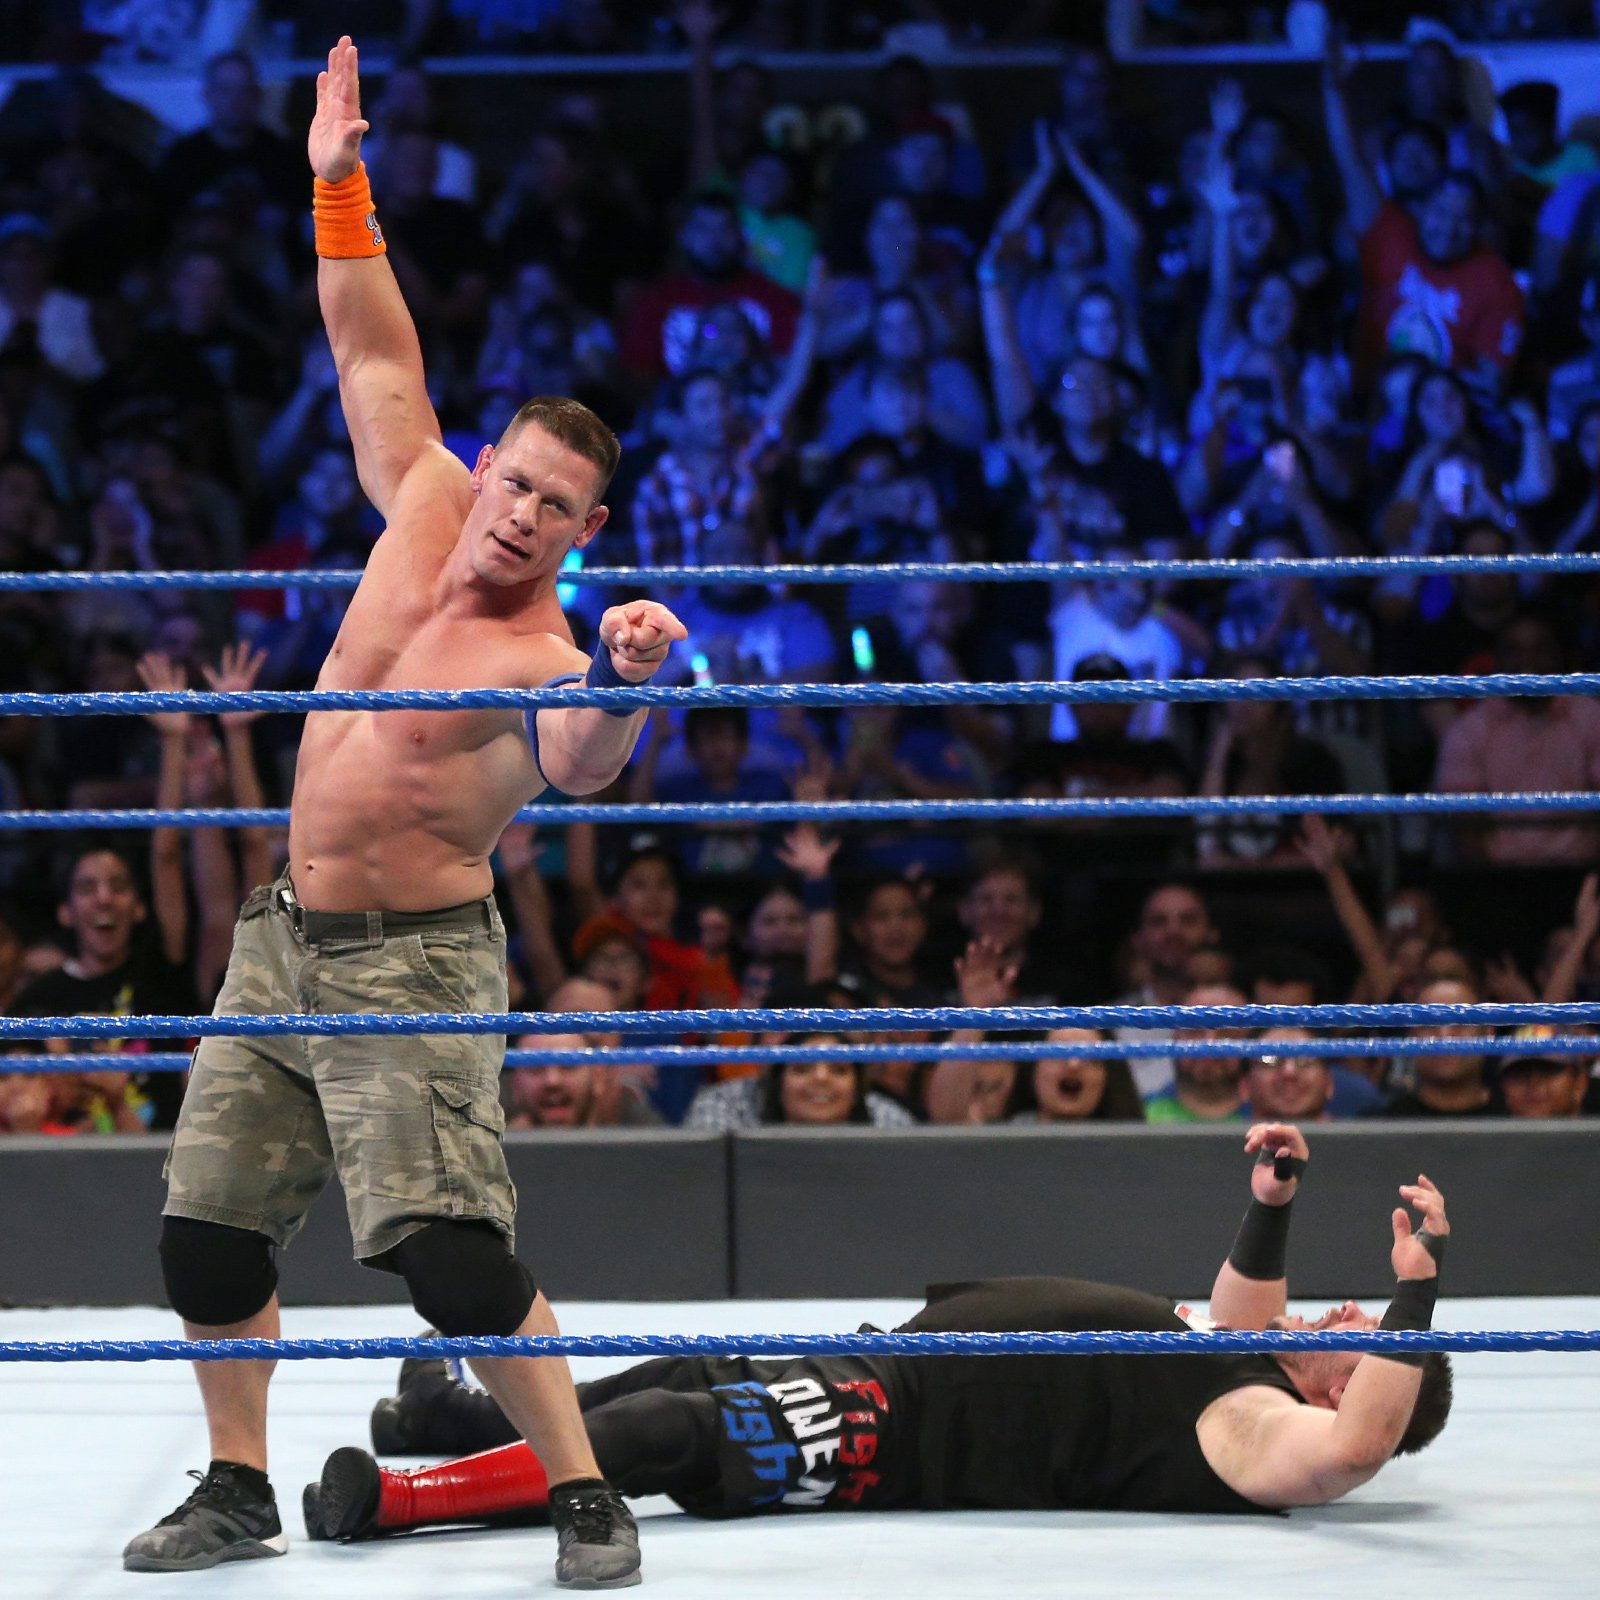 The Leader of the Cenation prepares to drop the Five Knuckle Shuffle.